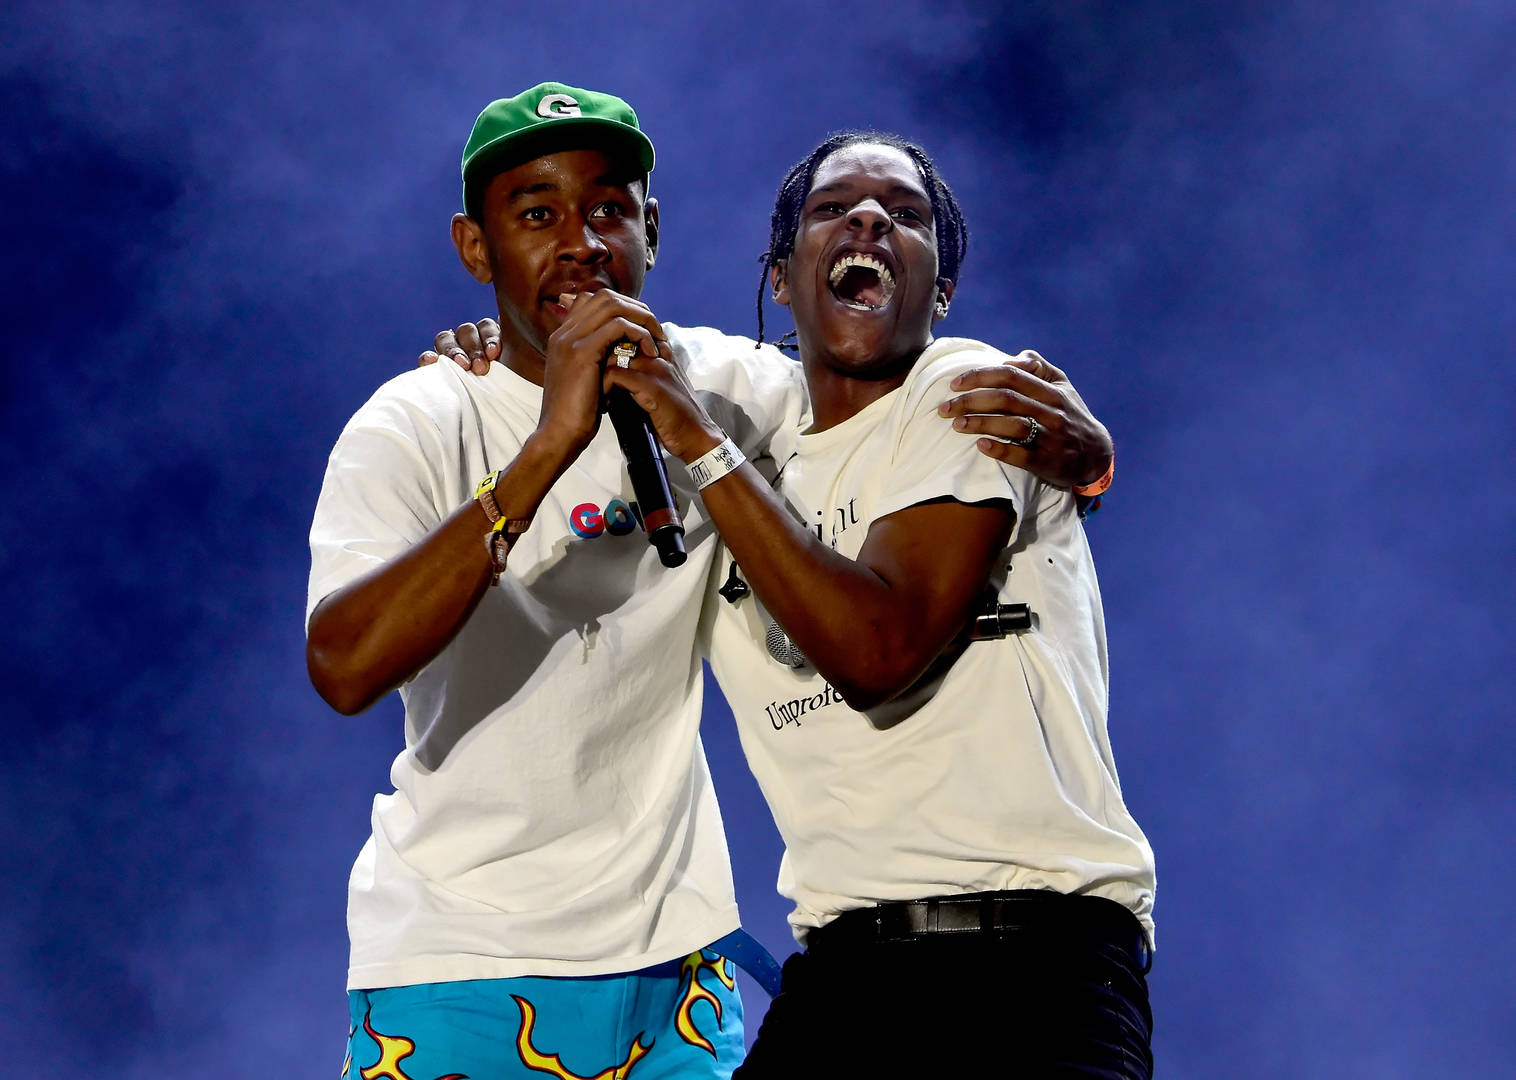 """Tyler, The Creator Brings A$AP Rocky For """"Who Dat Boy"""" At MSG Show"""